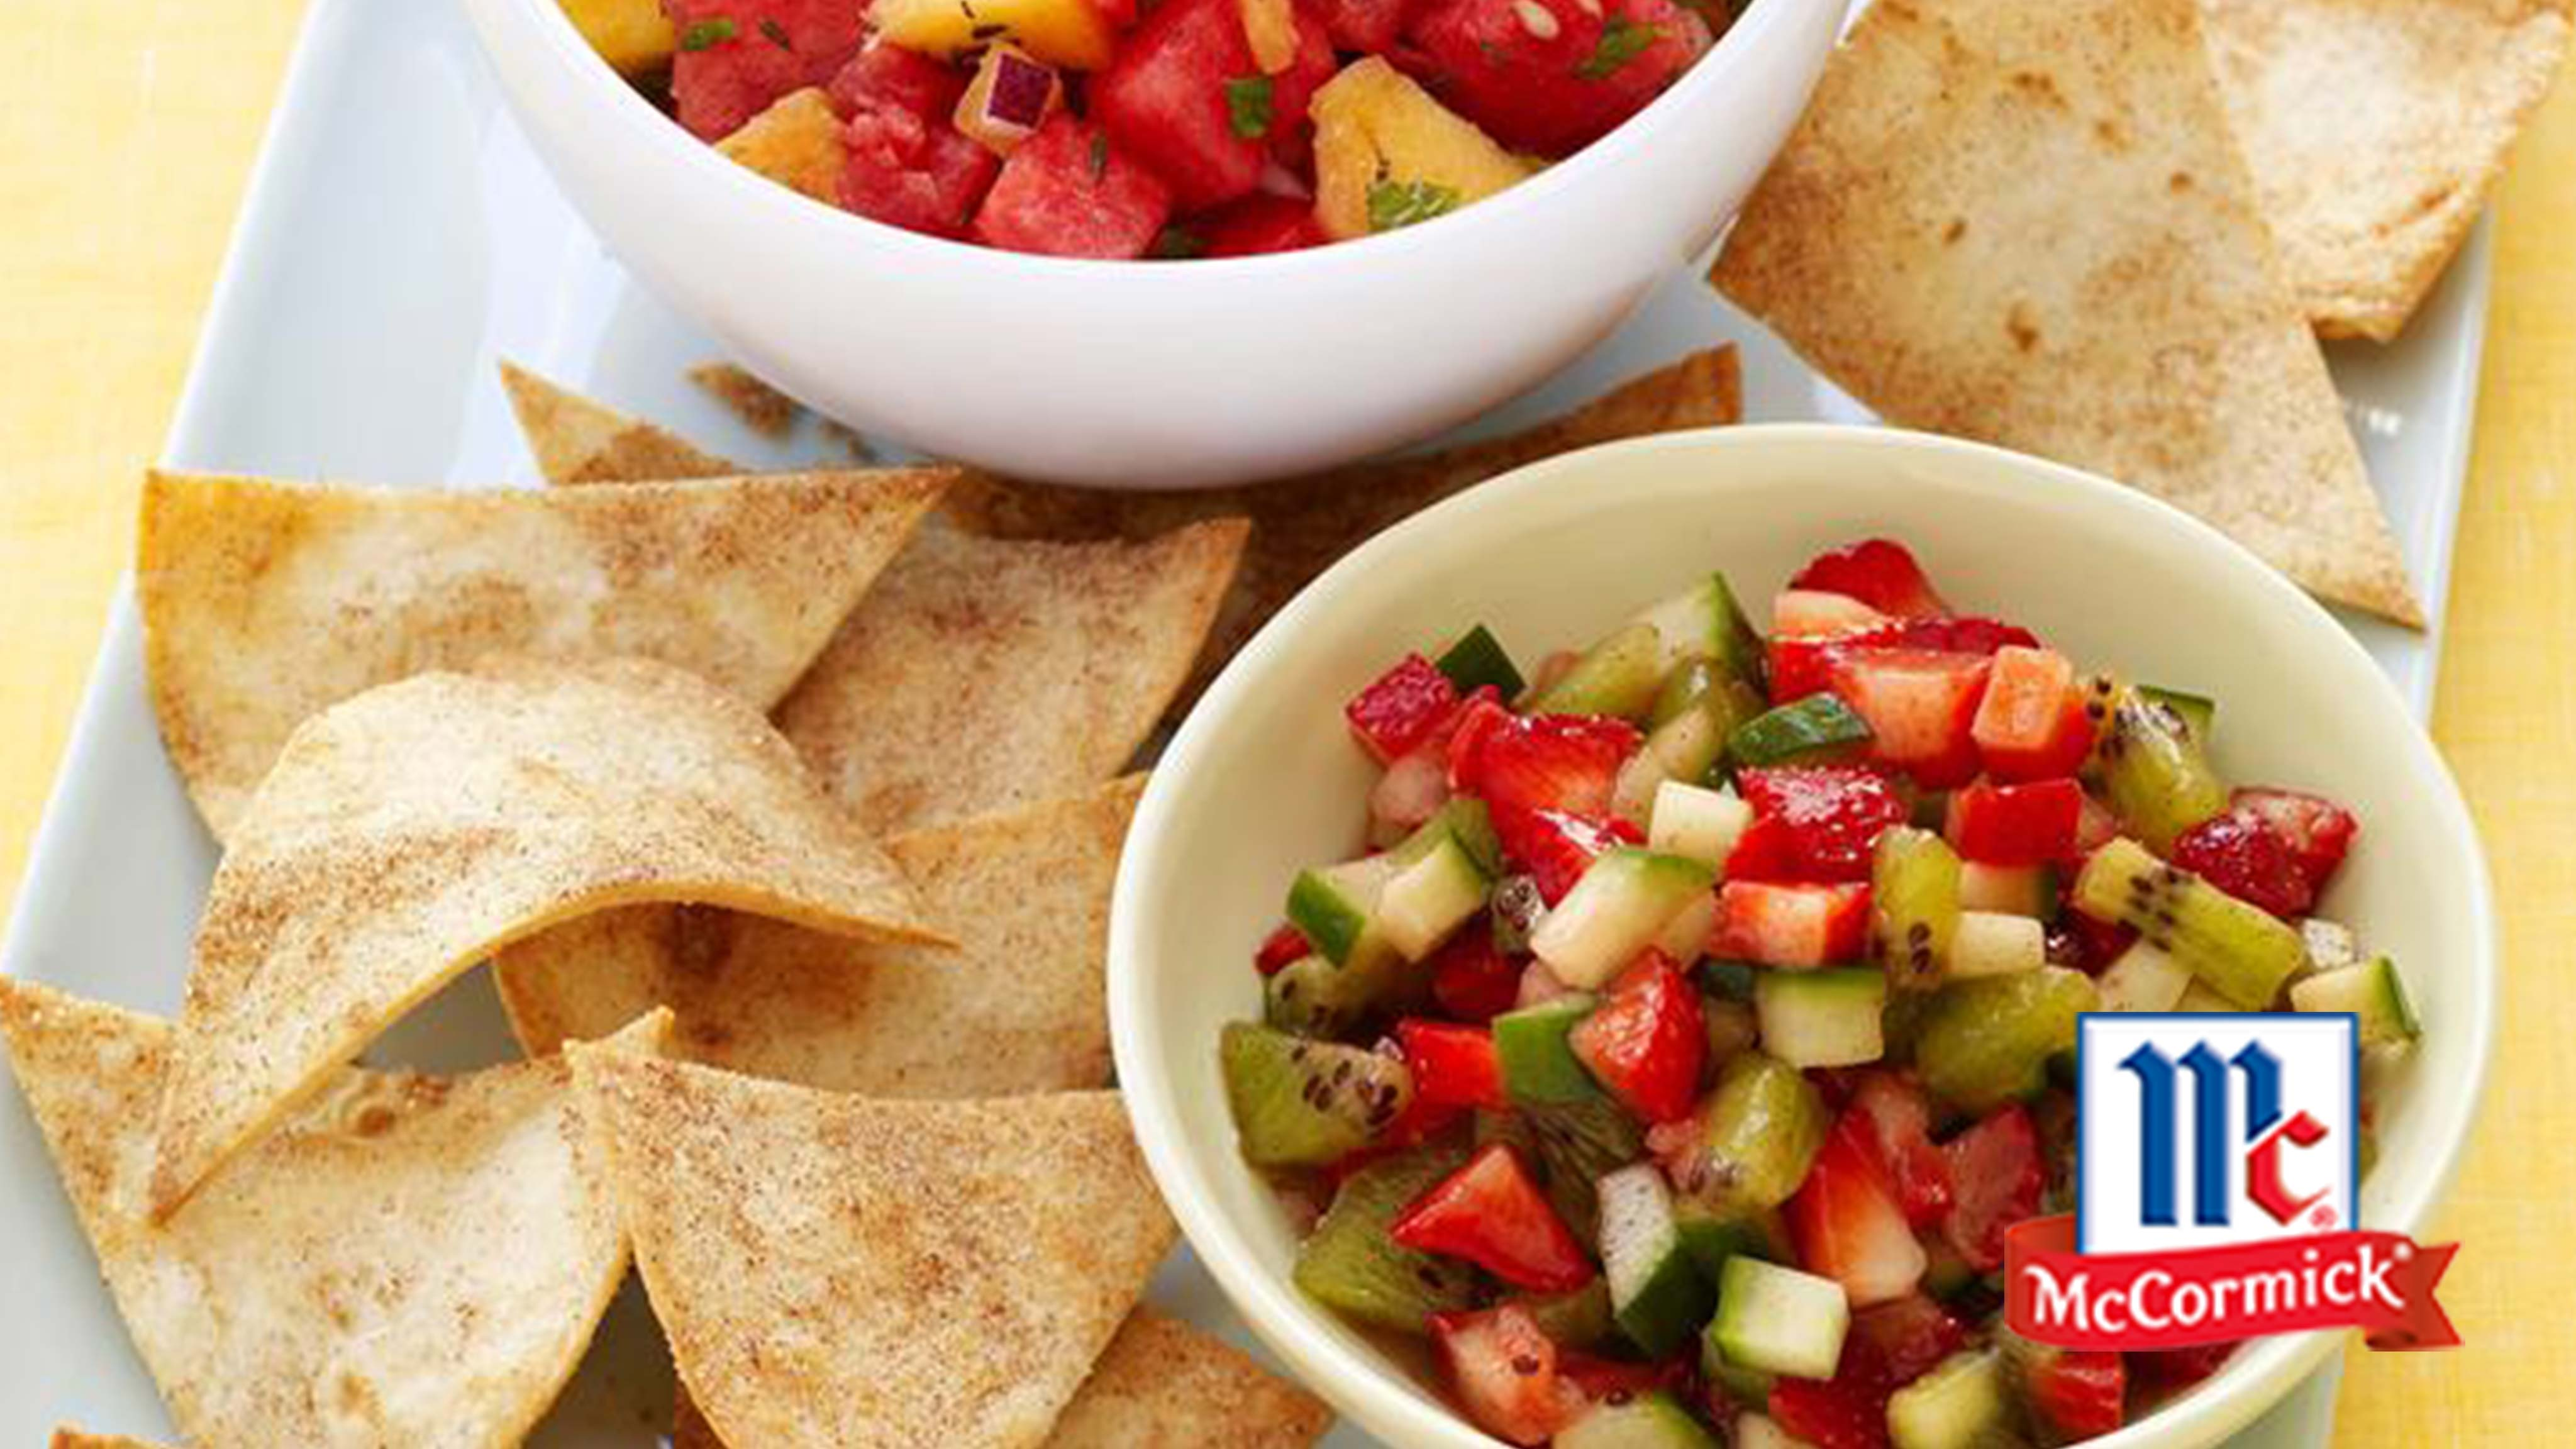 Image for Recipe Cool Strawberry Salsa with Cinnamon Tortilla Chips